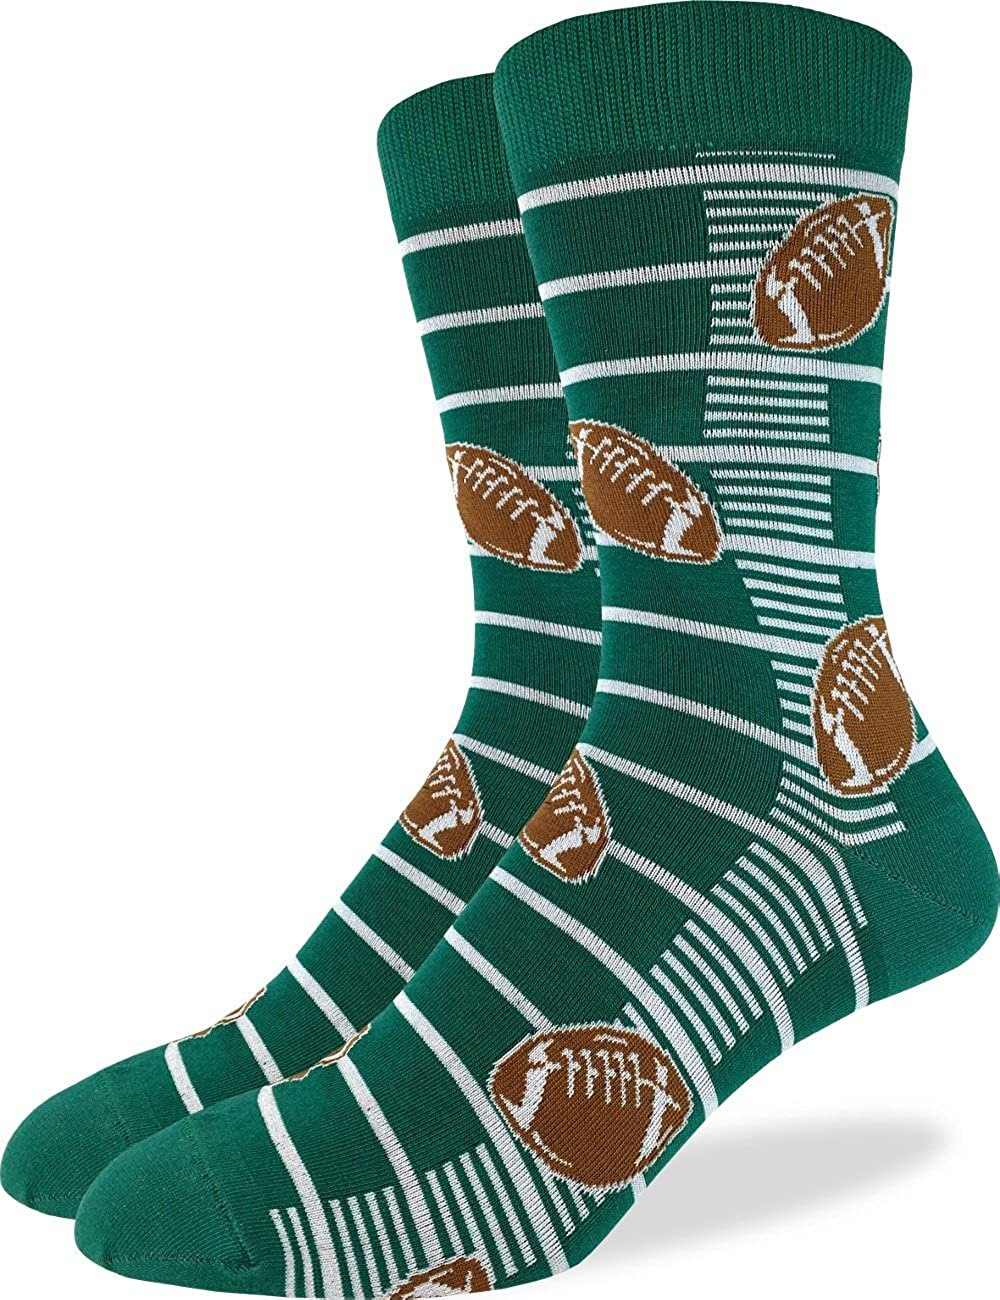 Good Luck Sock Men's Football Crew Socks - Green, Shoe Size 7-12